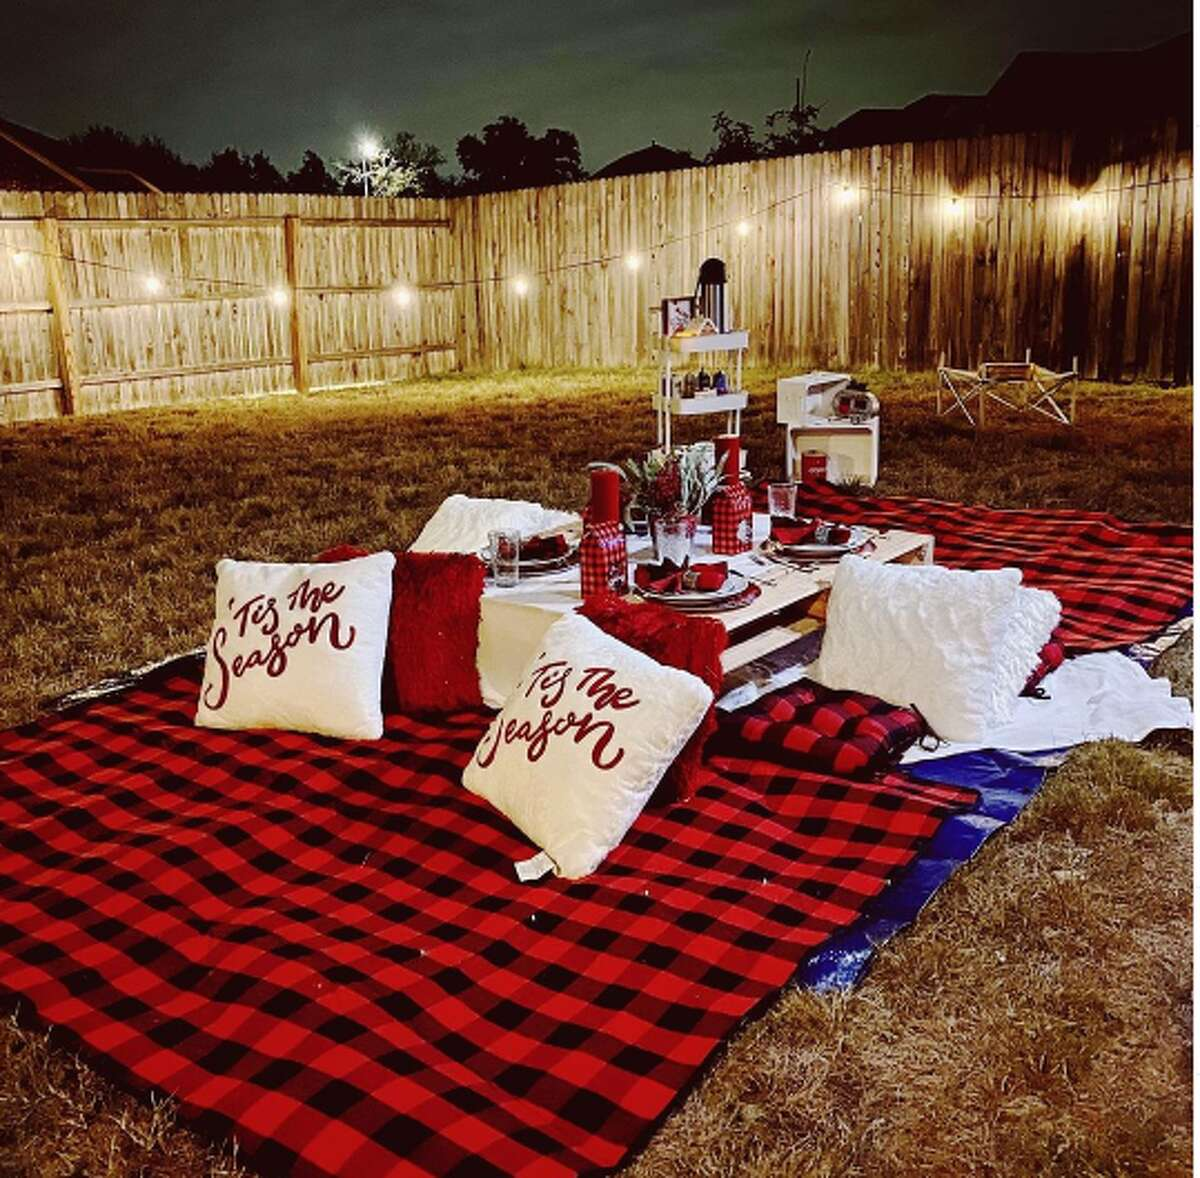 The Picnic Pitstop offers private and public set-ups, according to White, who said the purpose of the business is to help others take a break from life.